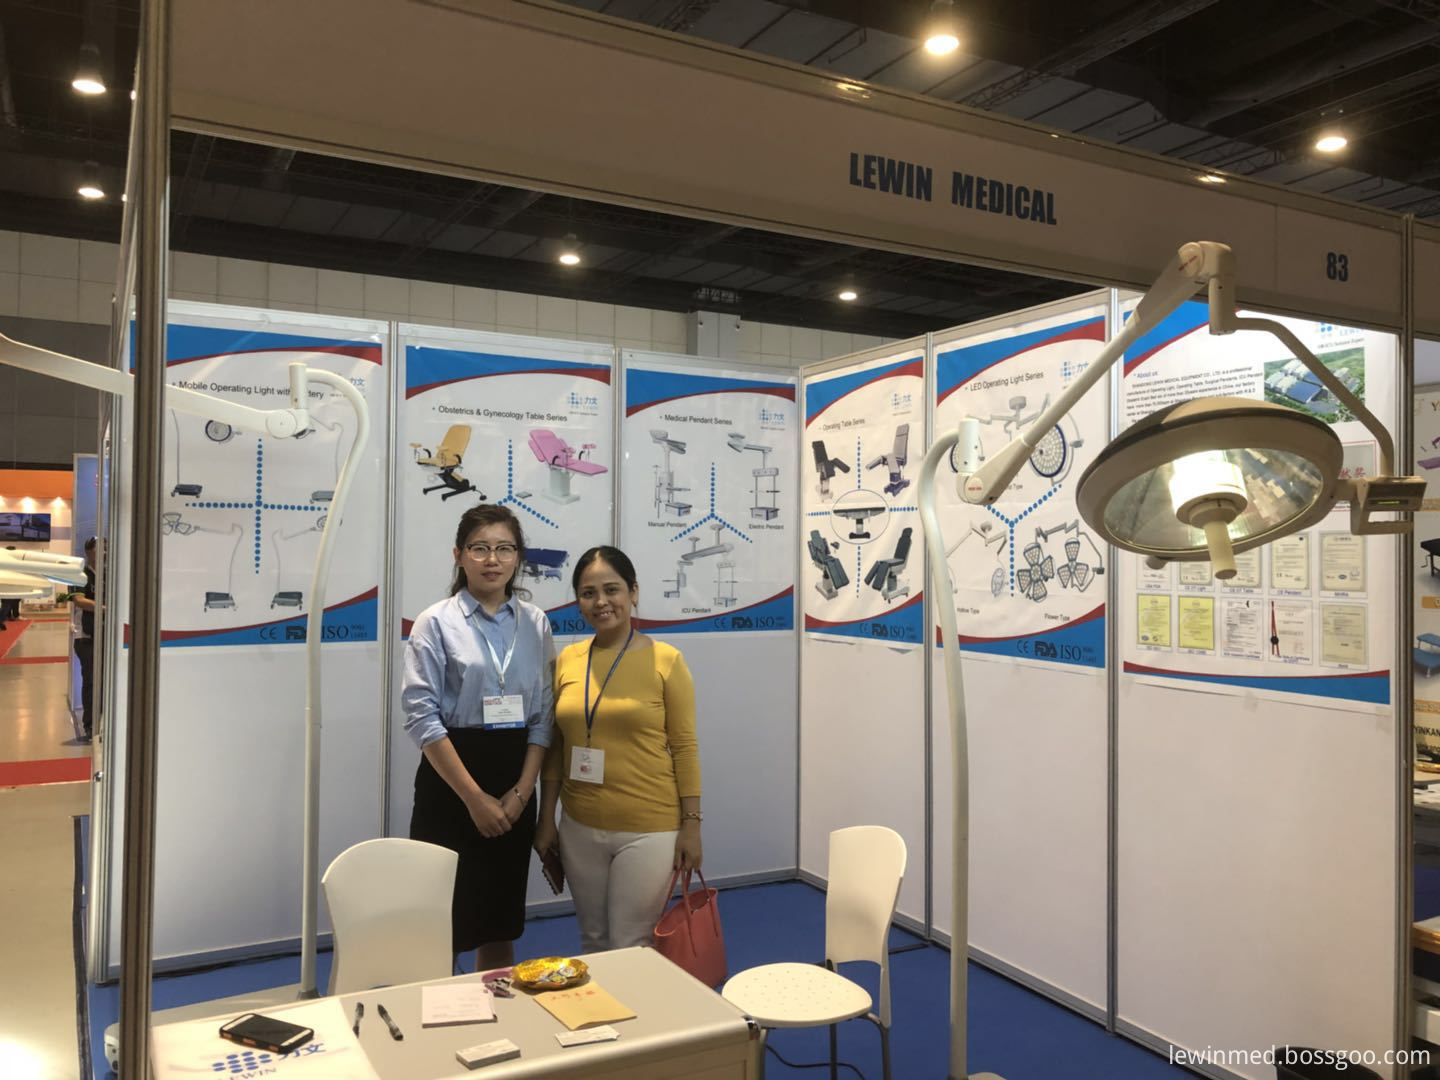 introduce for operating lamp